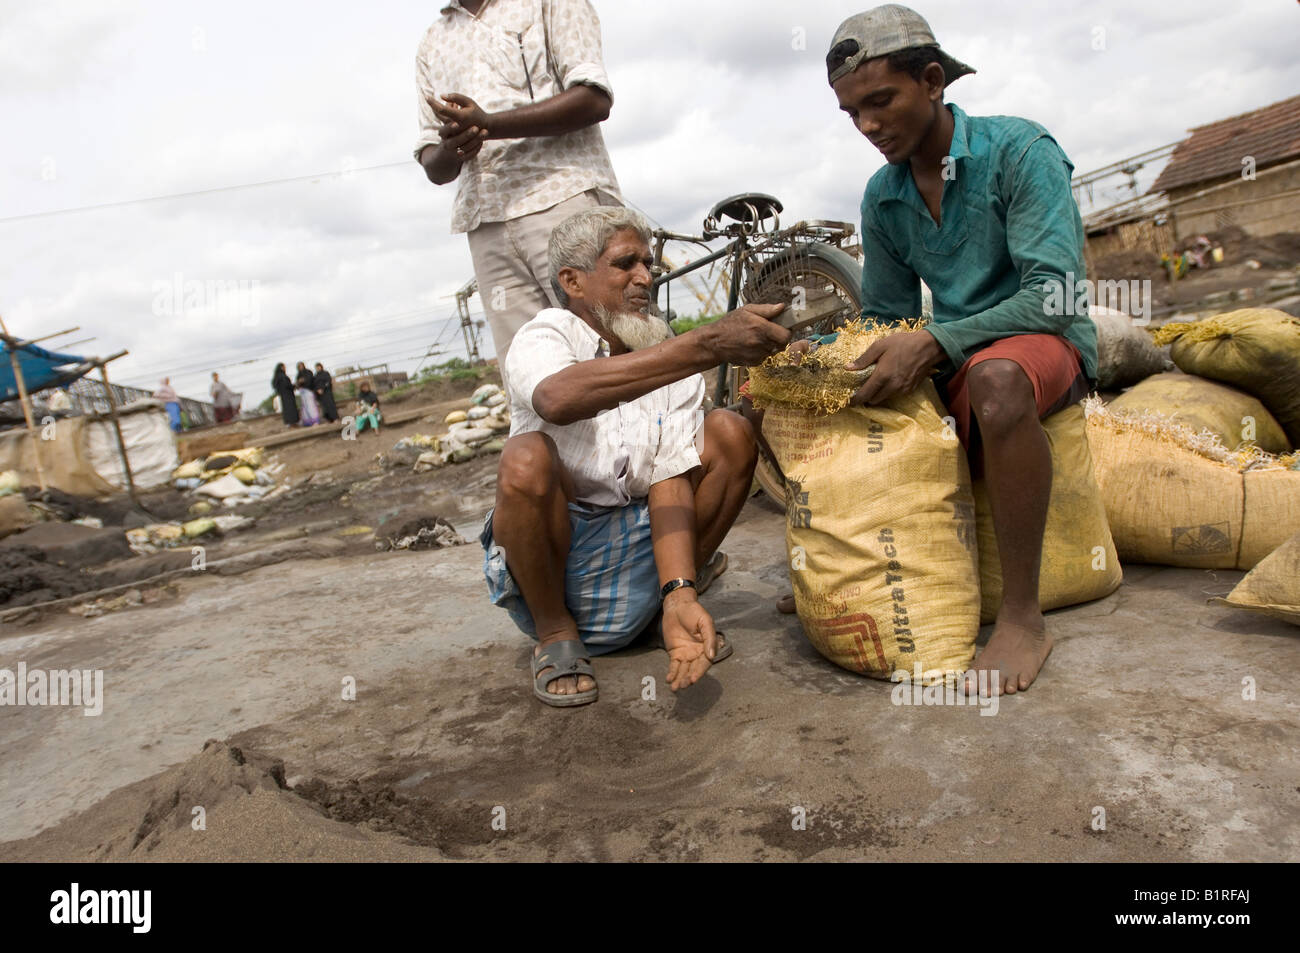 Indian day labourer using sorting copper splinters from toxic industrial slag, earning a living from recycling waste - Stock Image